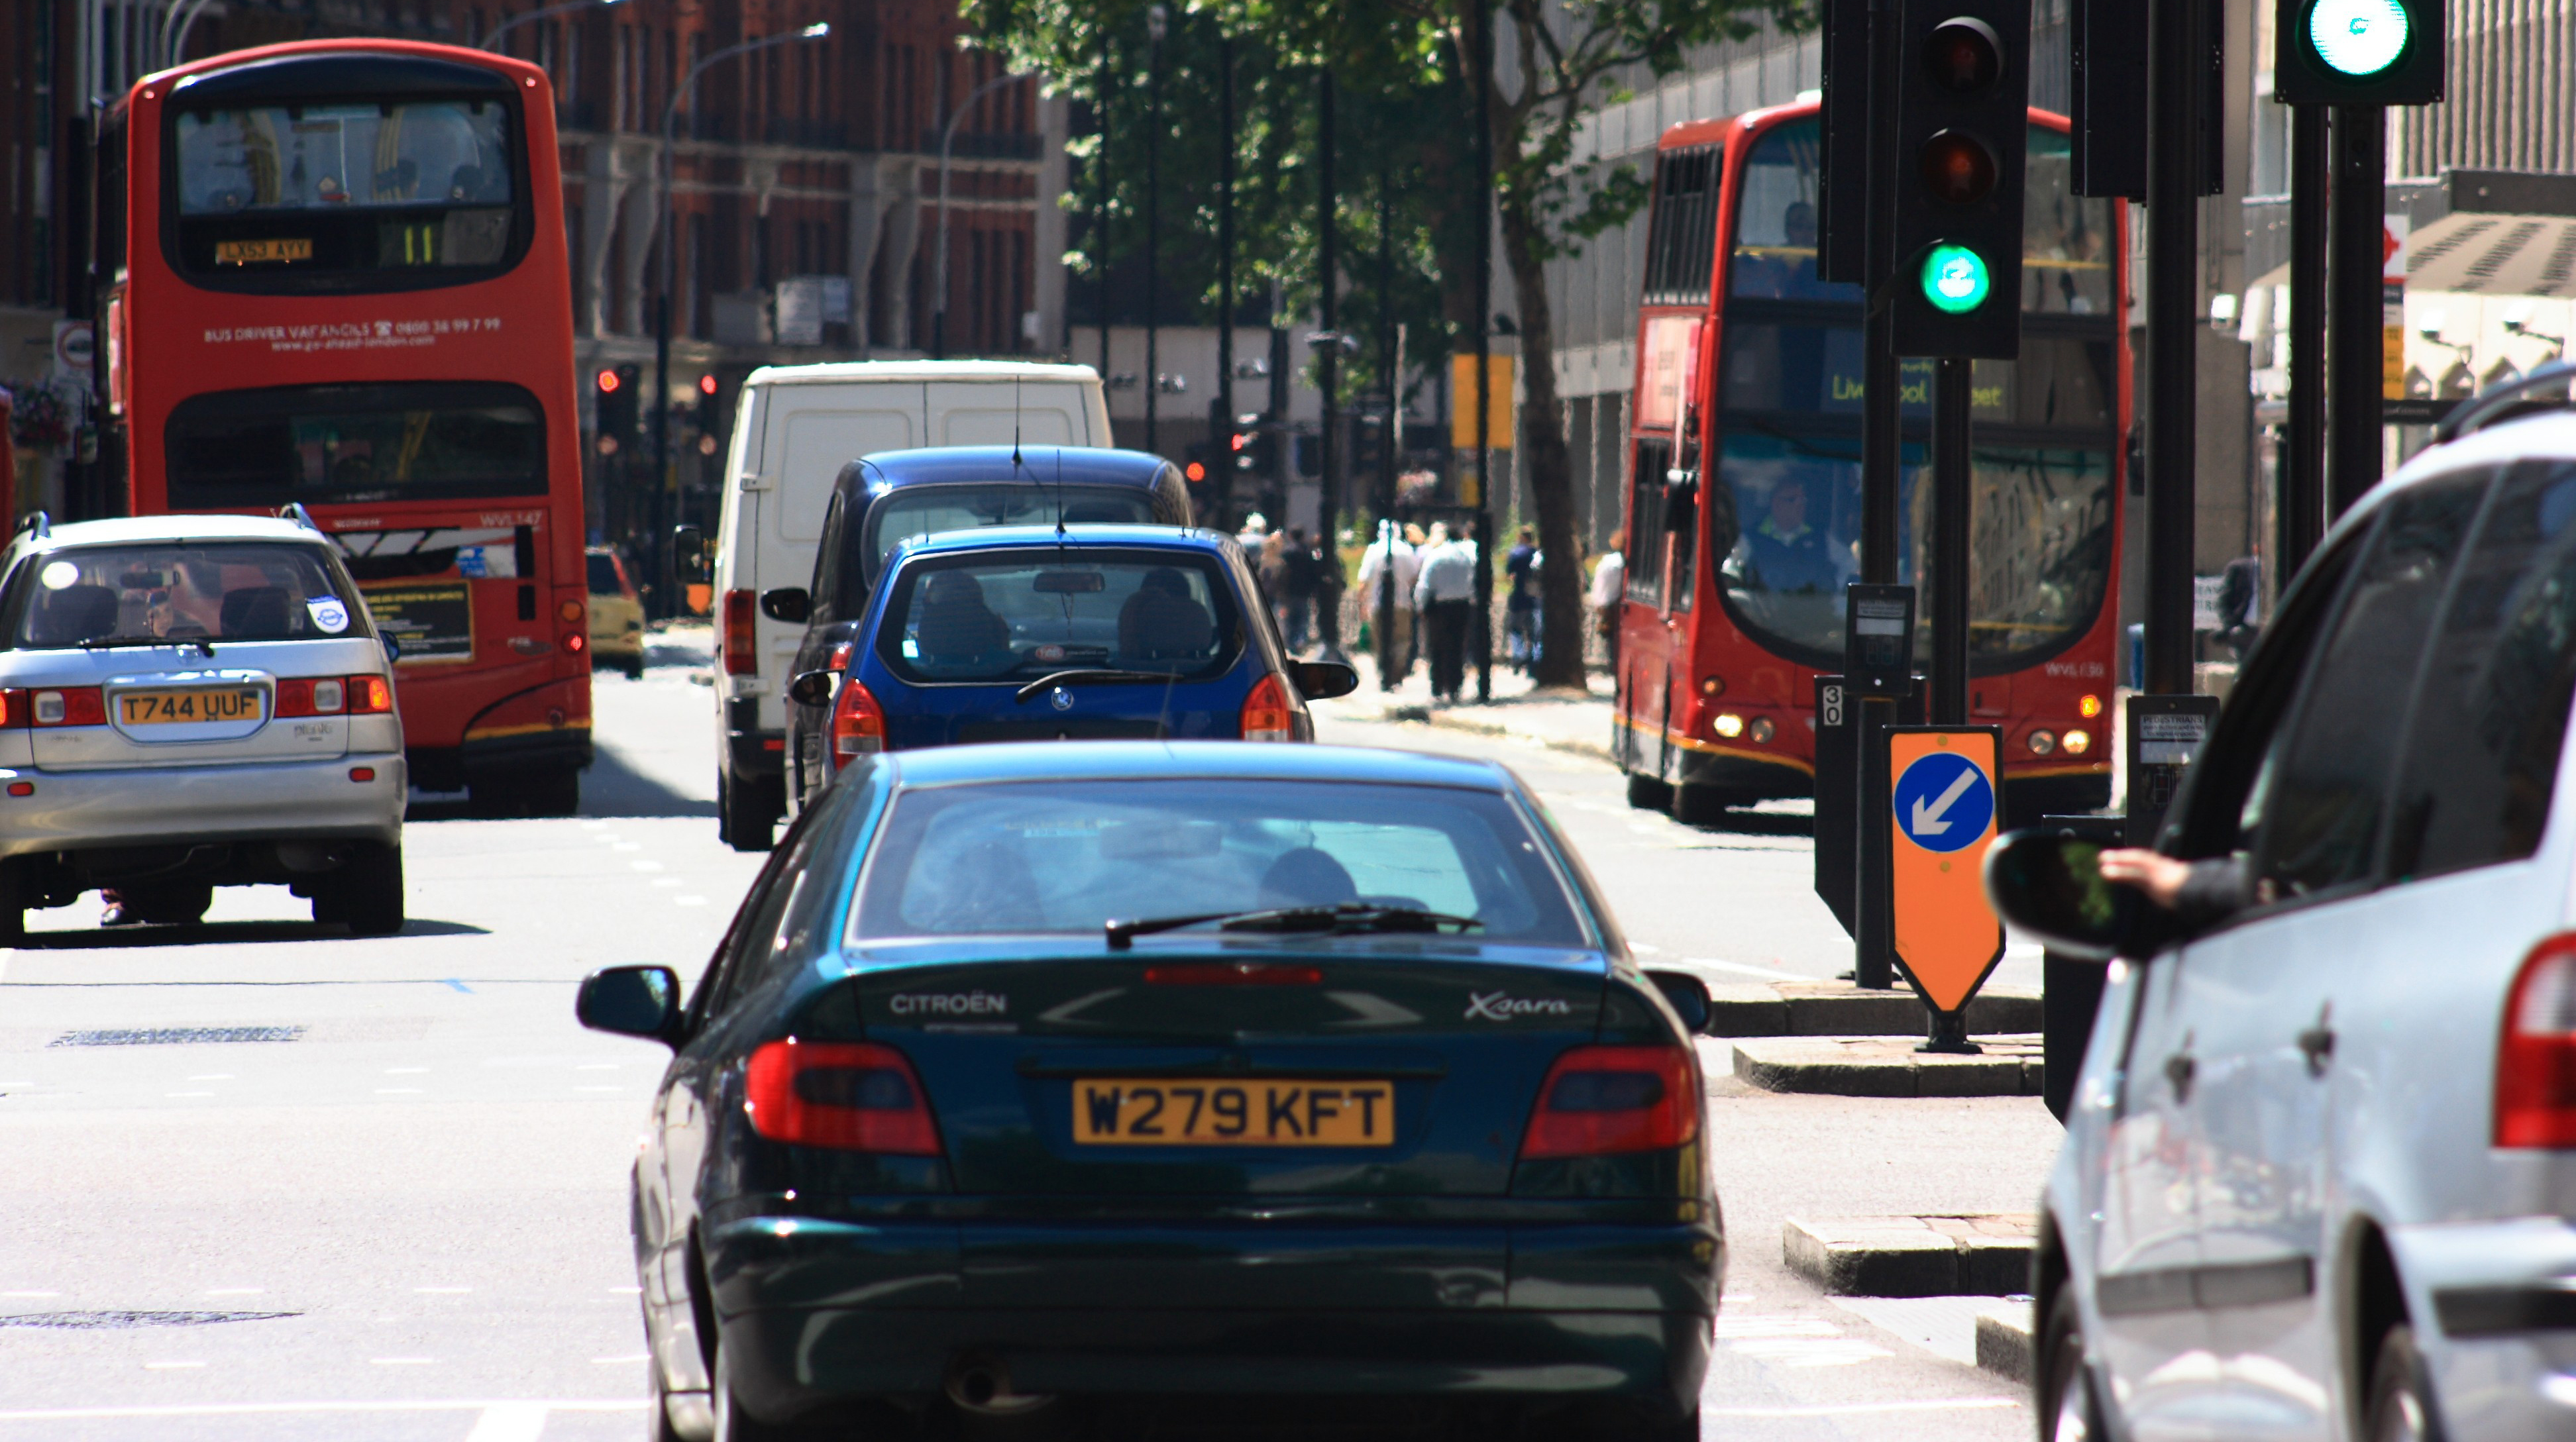 Congestion in London causes some bus routes to run at close to running speed.